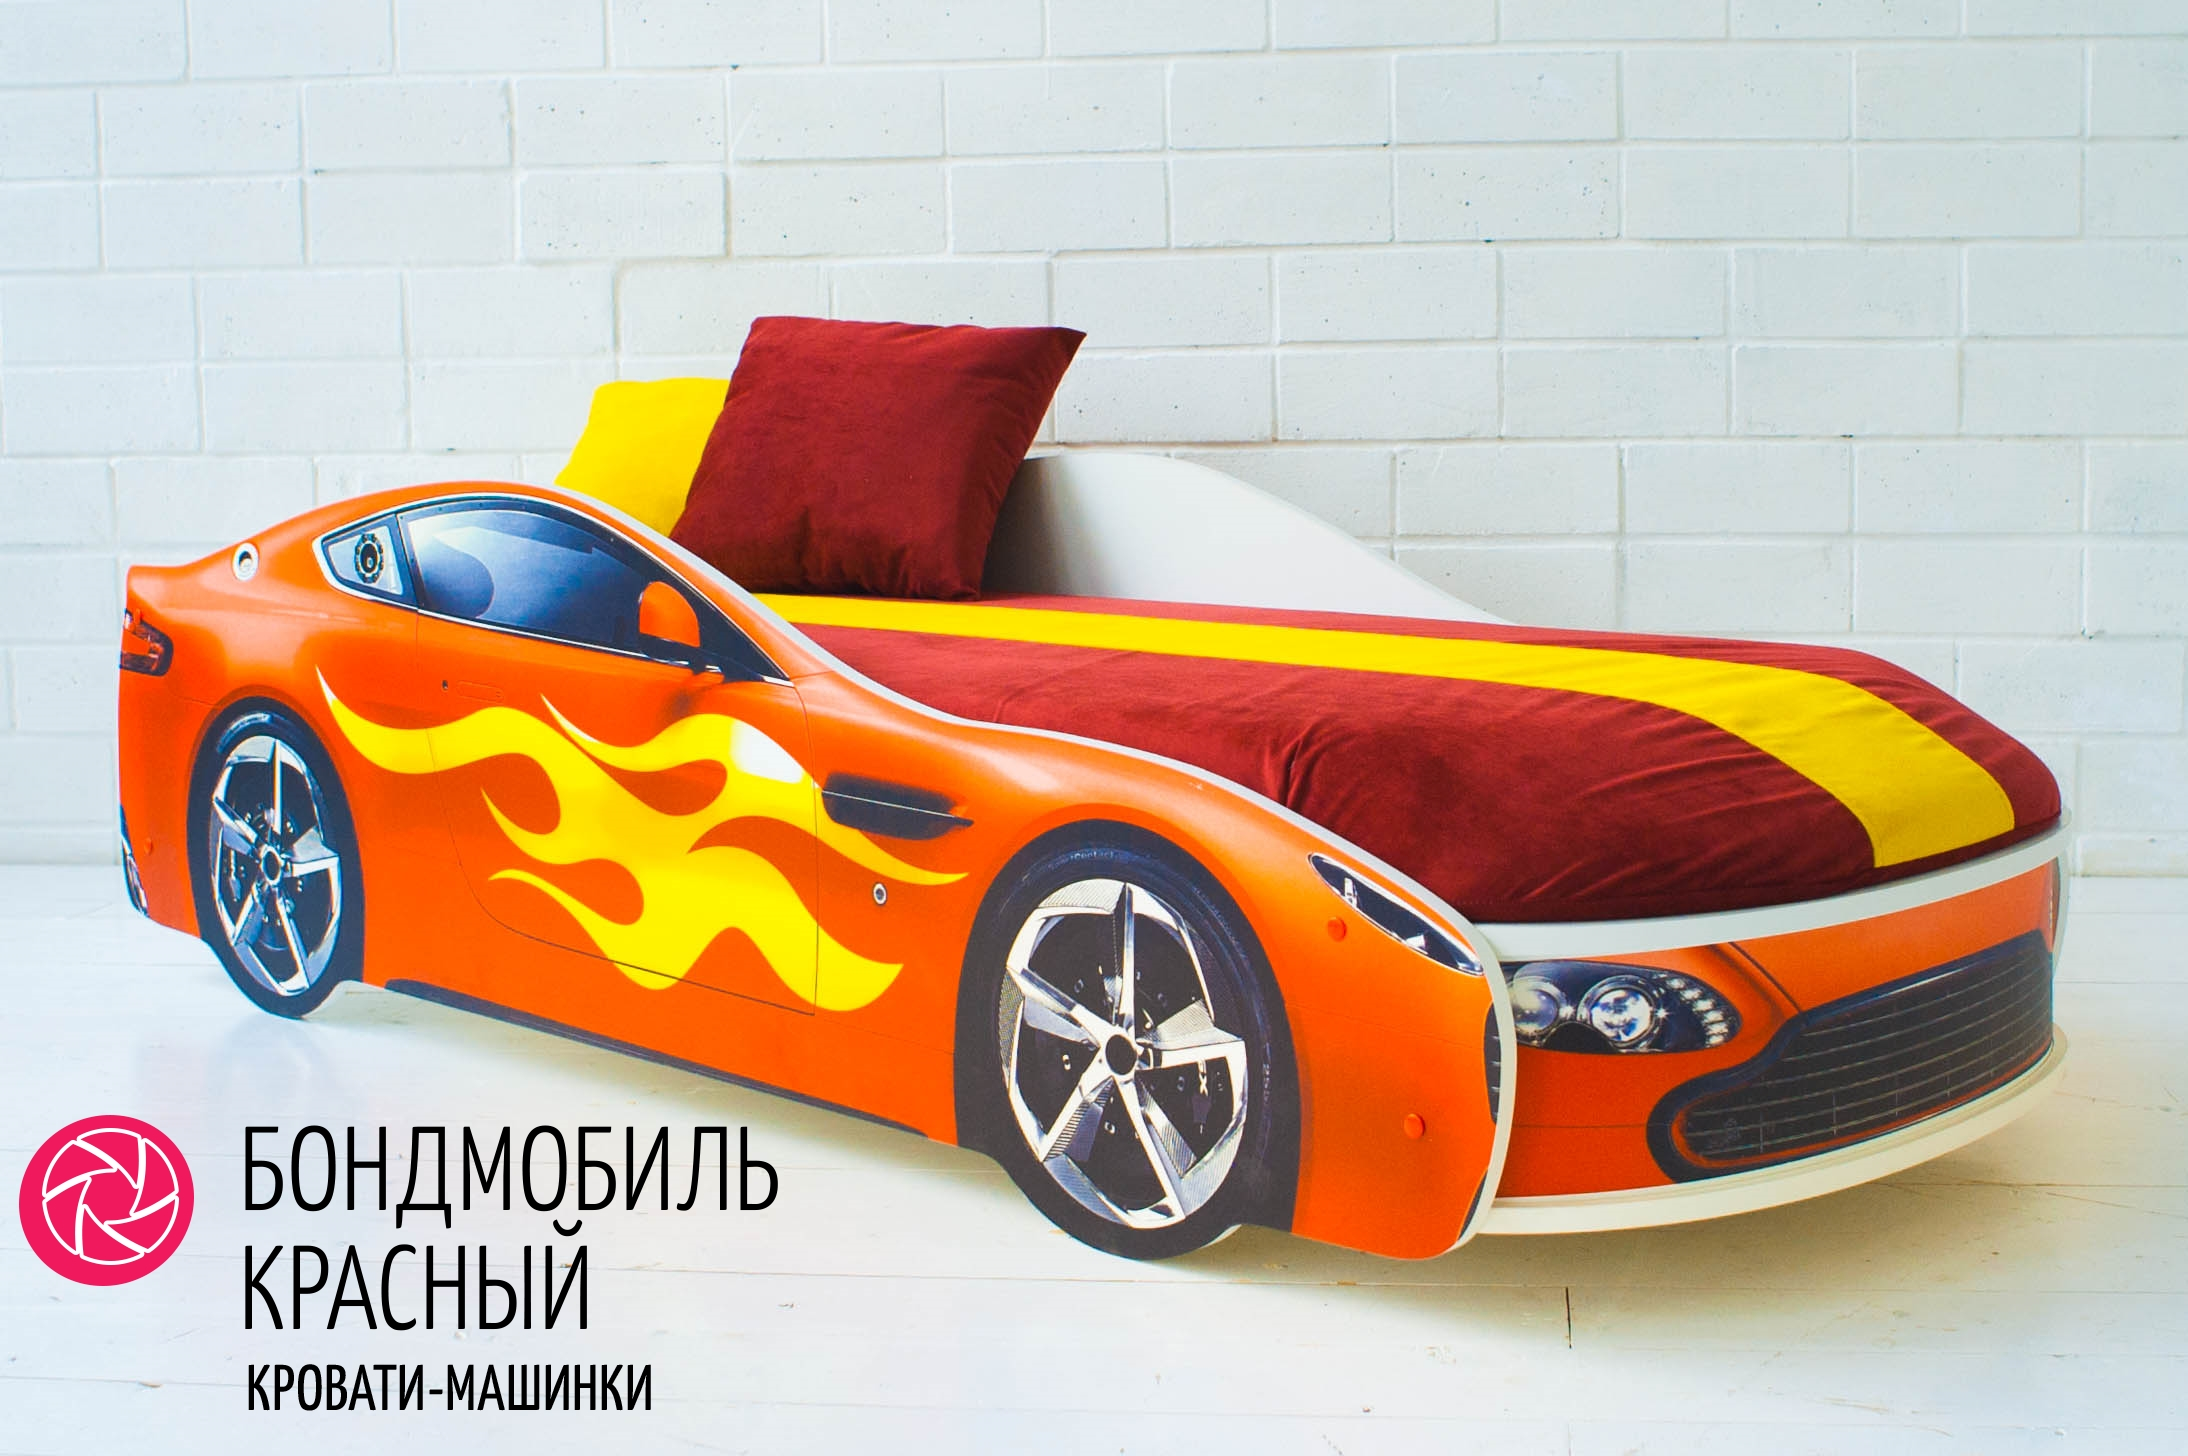 bed-bondmobil-krashyi